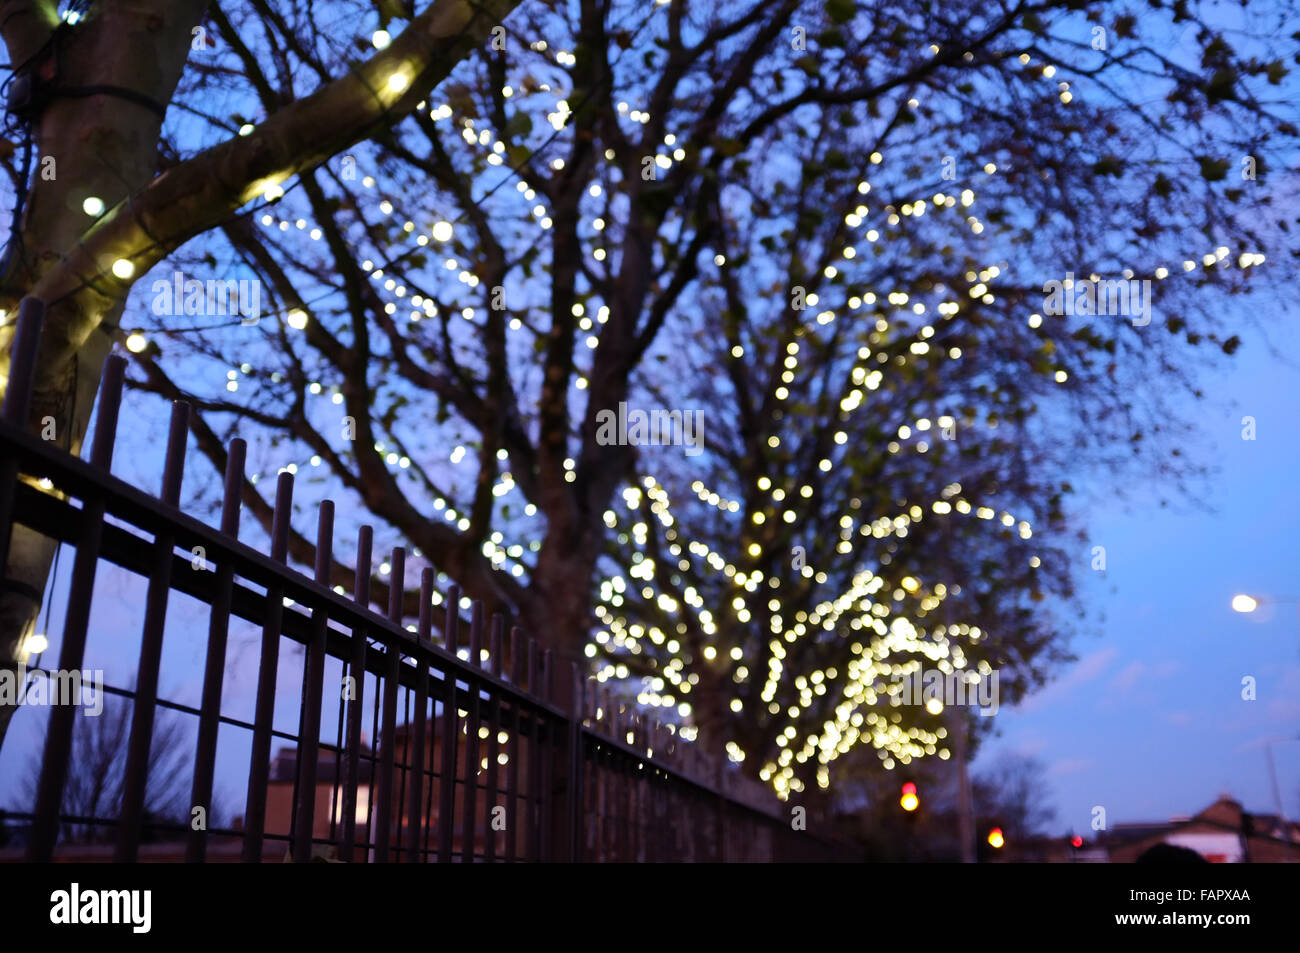 Street Lights In Trees In Leyton, East London, With Focus On Fence In  Foreground.